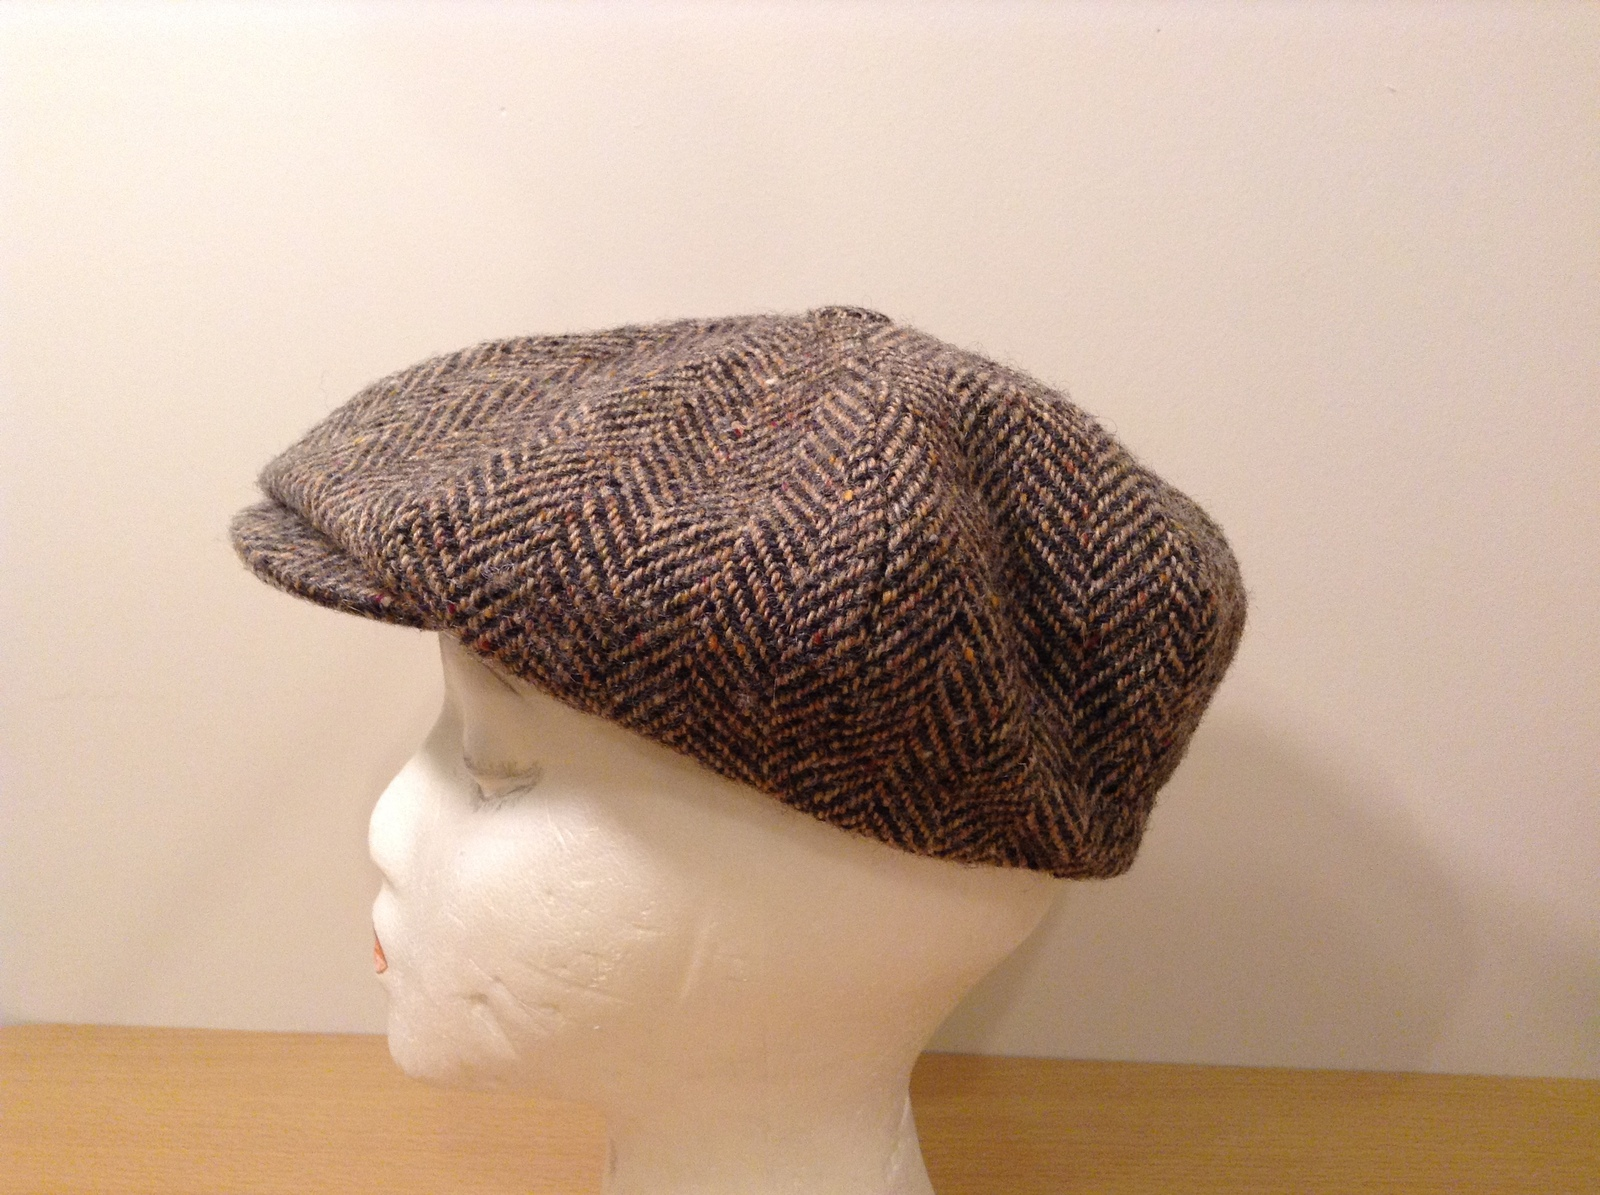 Hanna Hats for L.L.Bean 100% Wool Brown Tweed Scottish Cap Hat, size M, Vintage